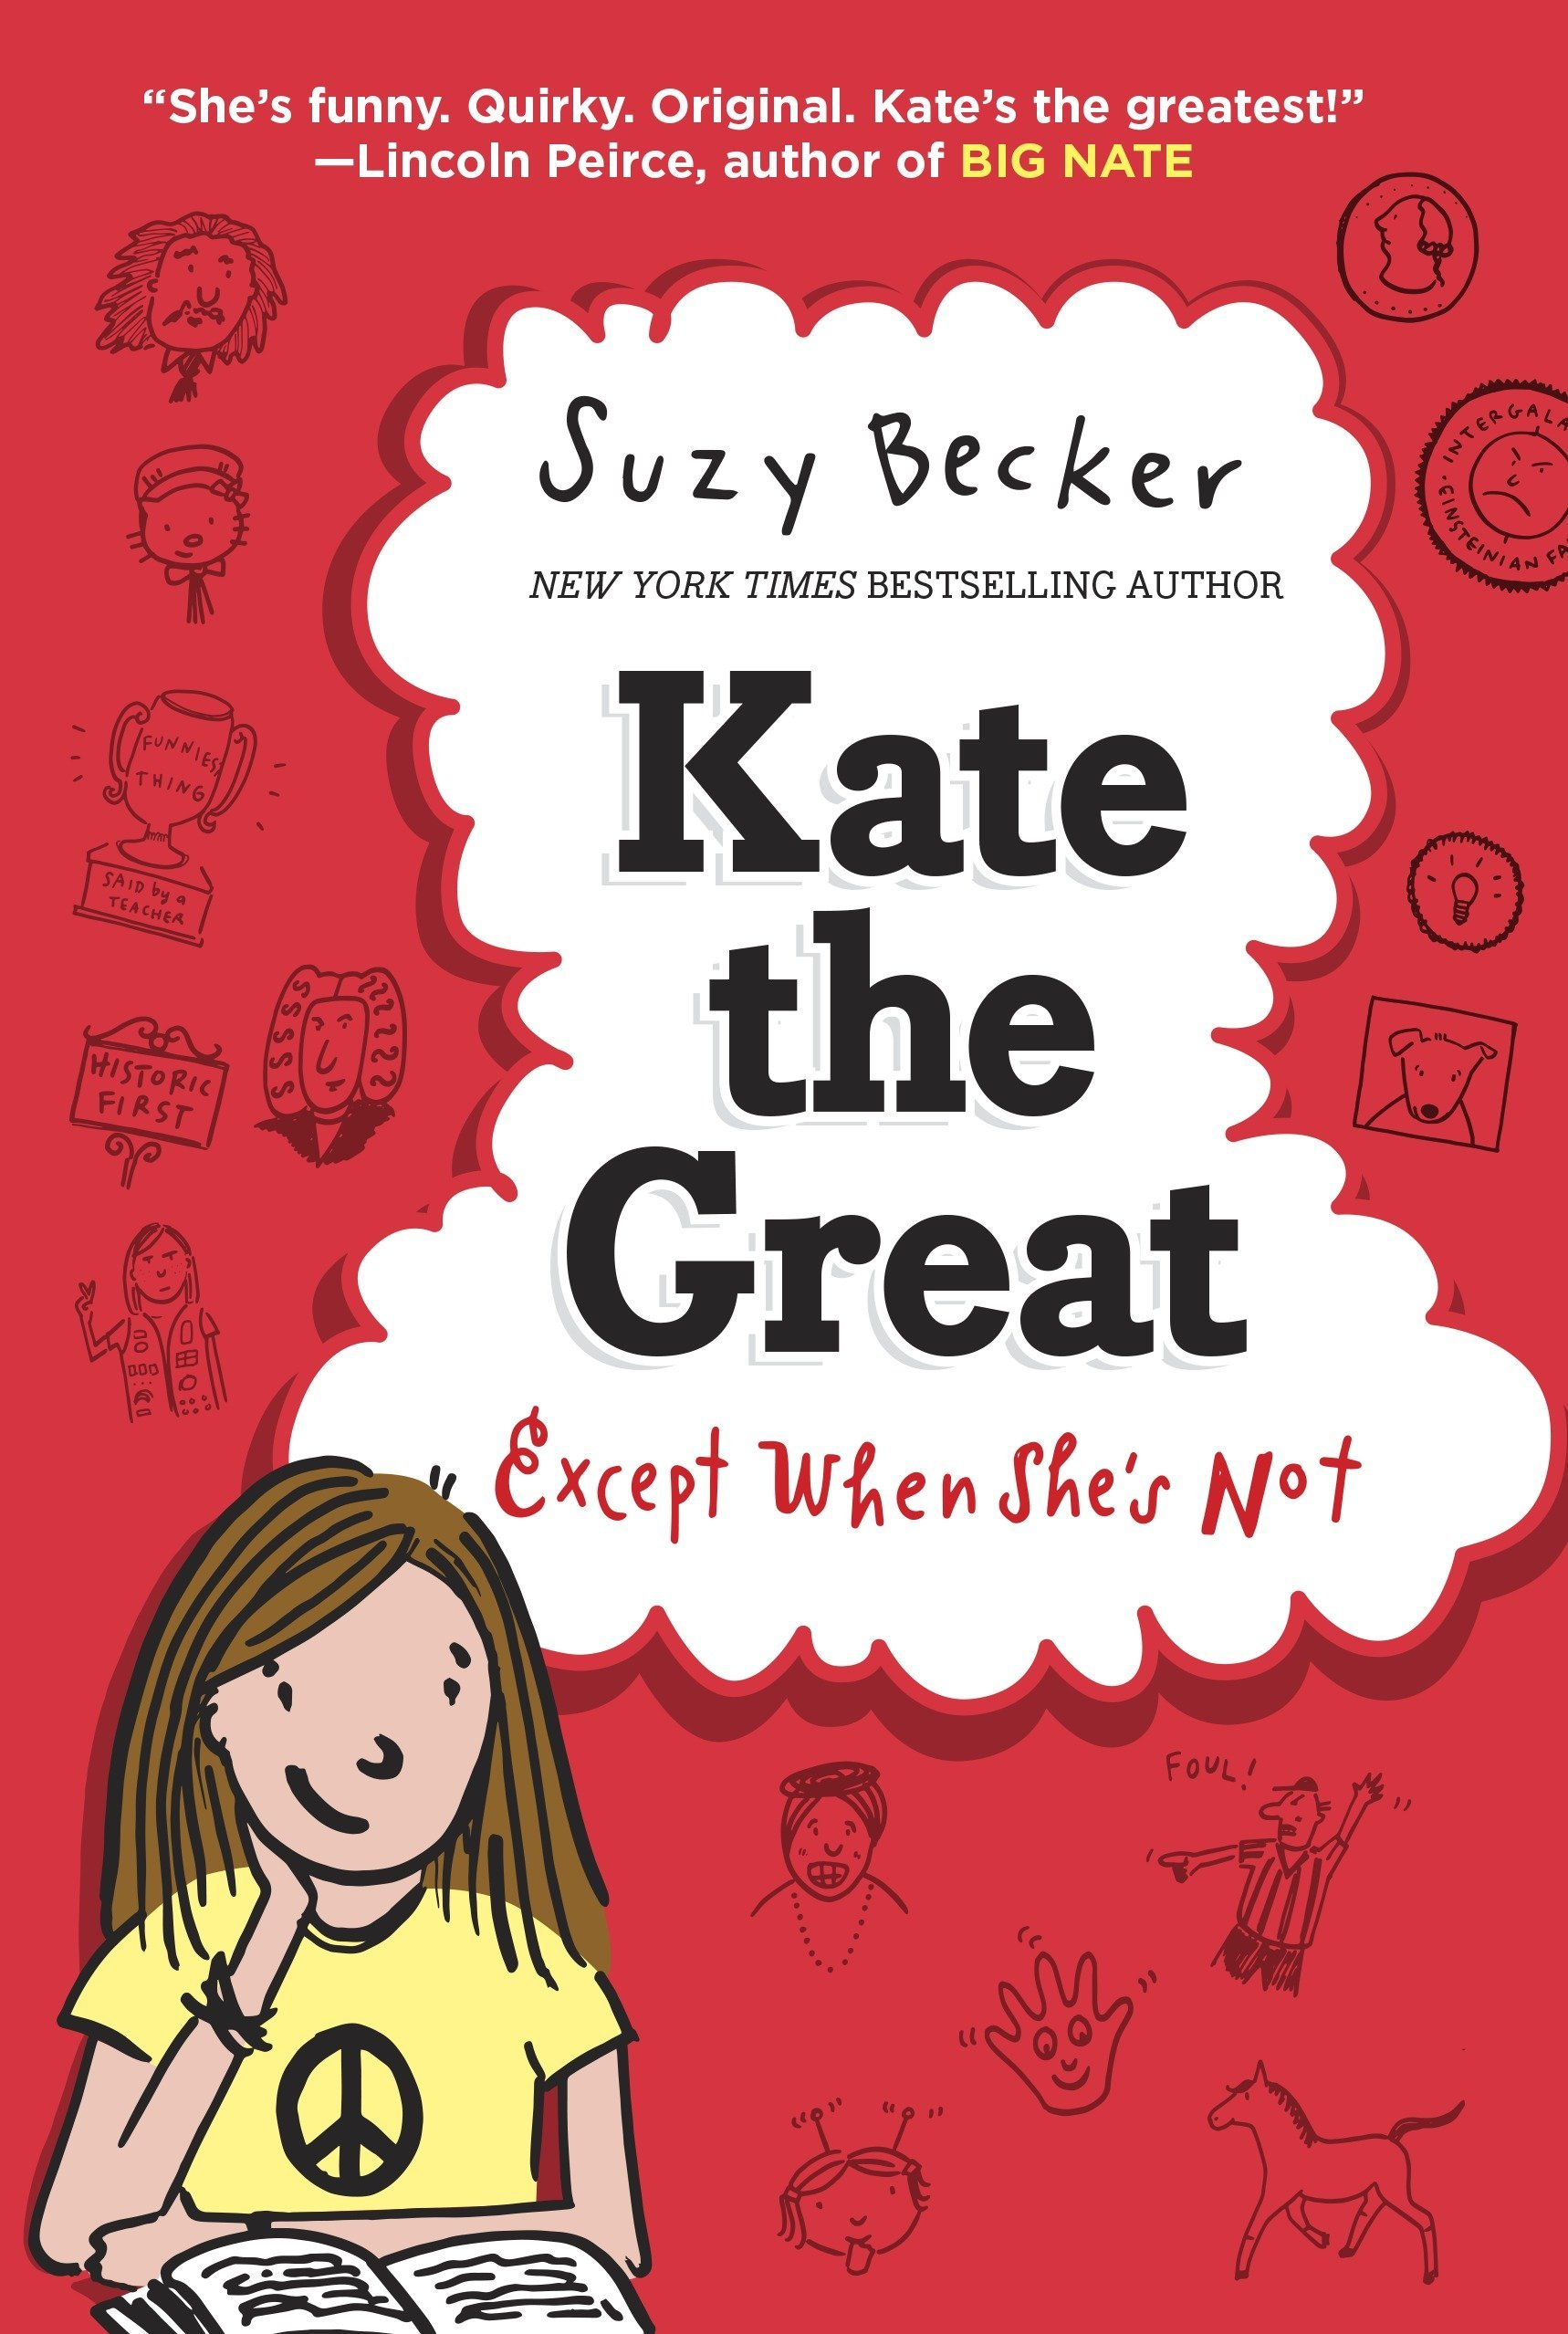 Kate The Great Except When Shes Not Suzy Becker 9780385387422 Amazon Books